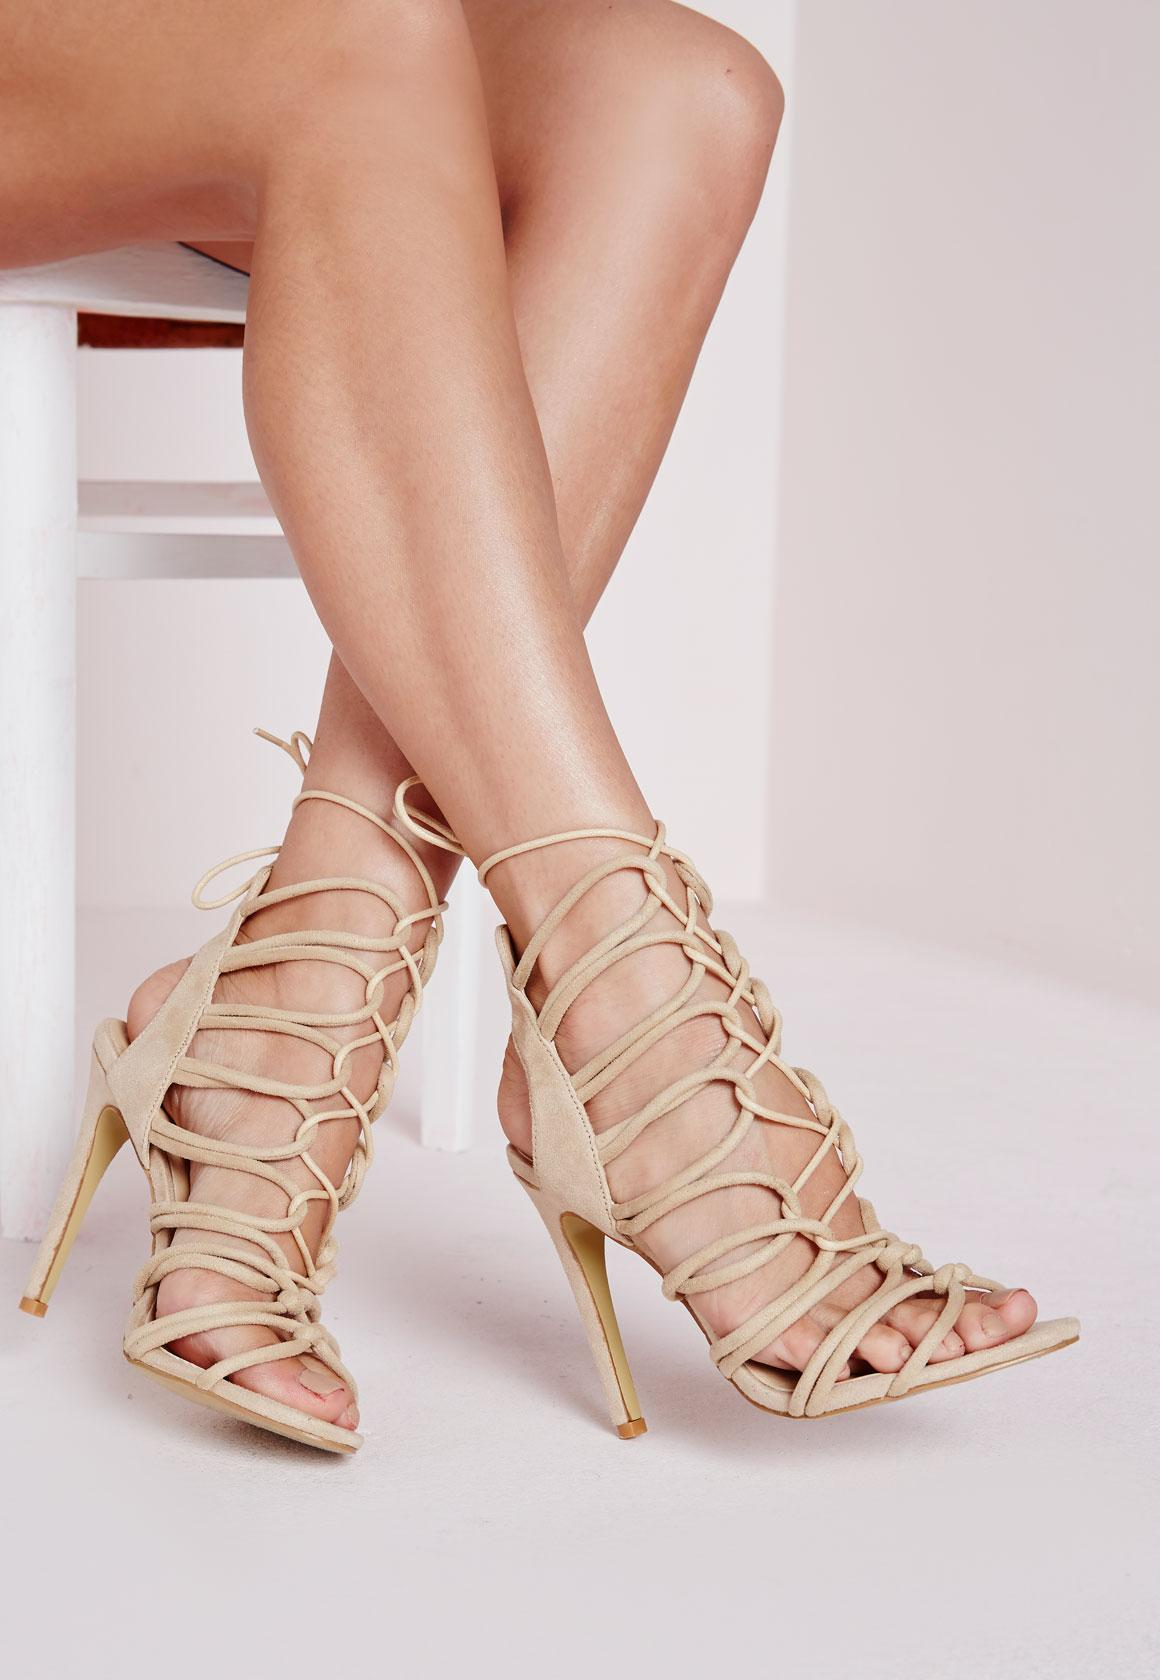 Wedding Lace High Heels rope lace up heeled sandals nude shoes high heels missguided previous next